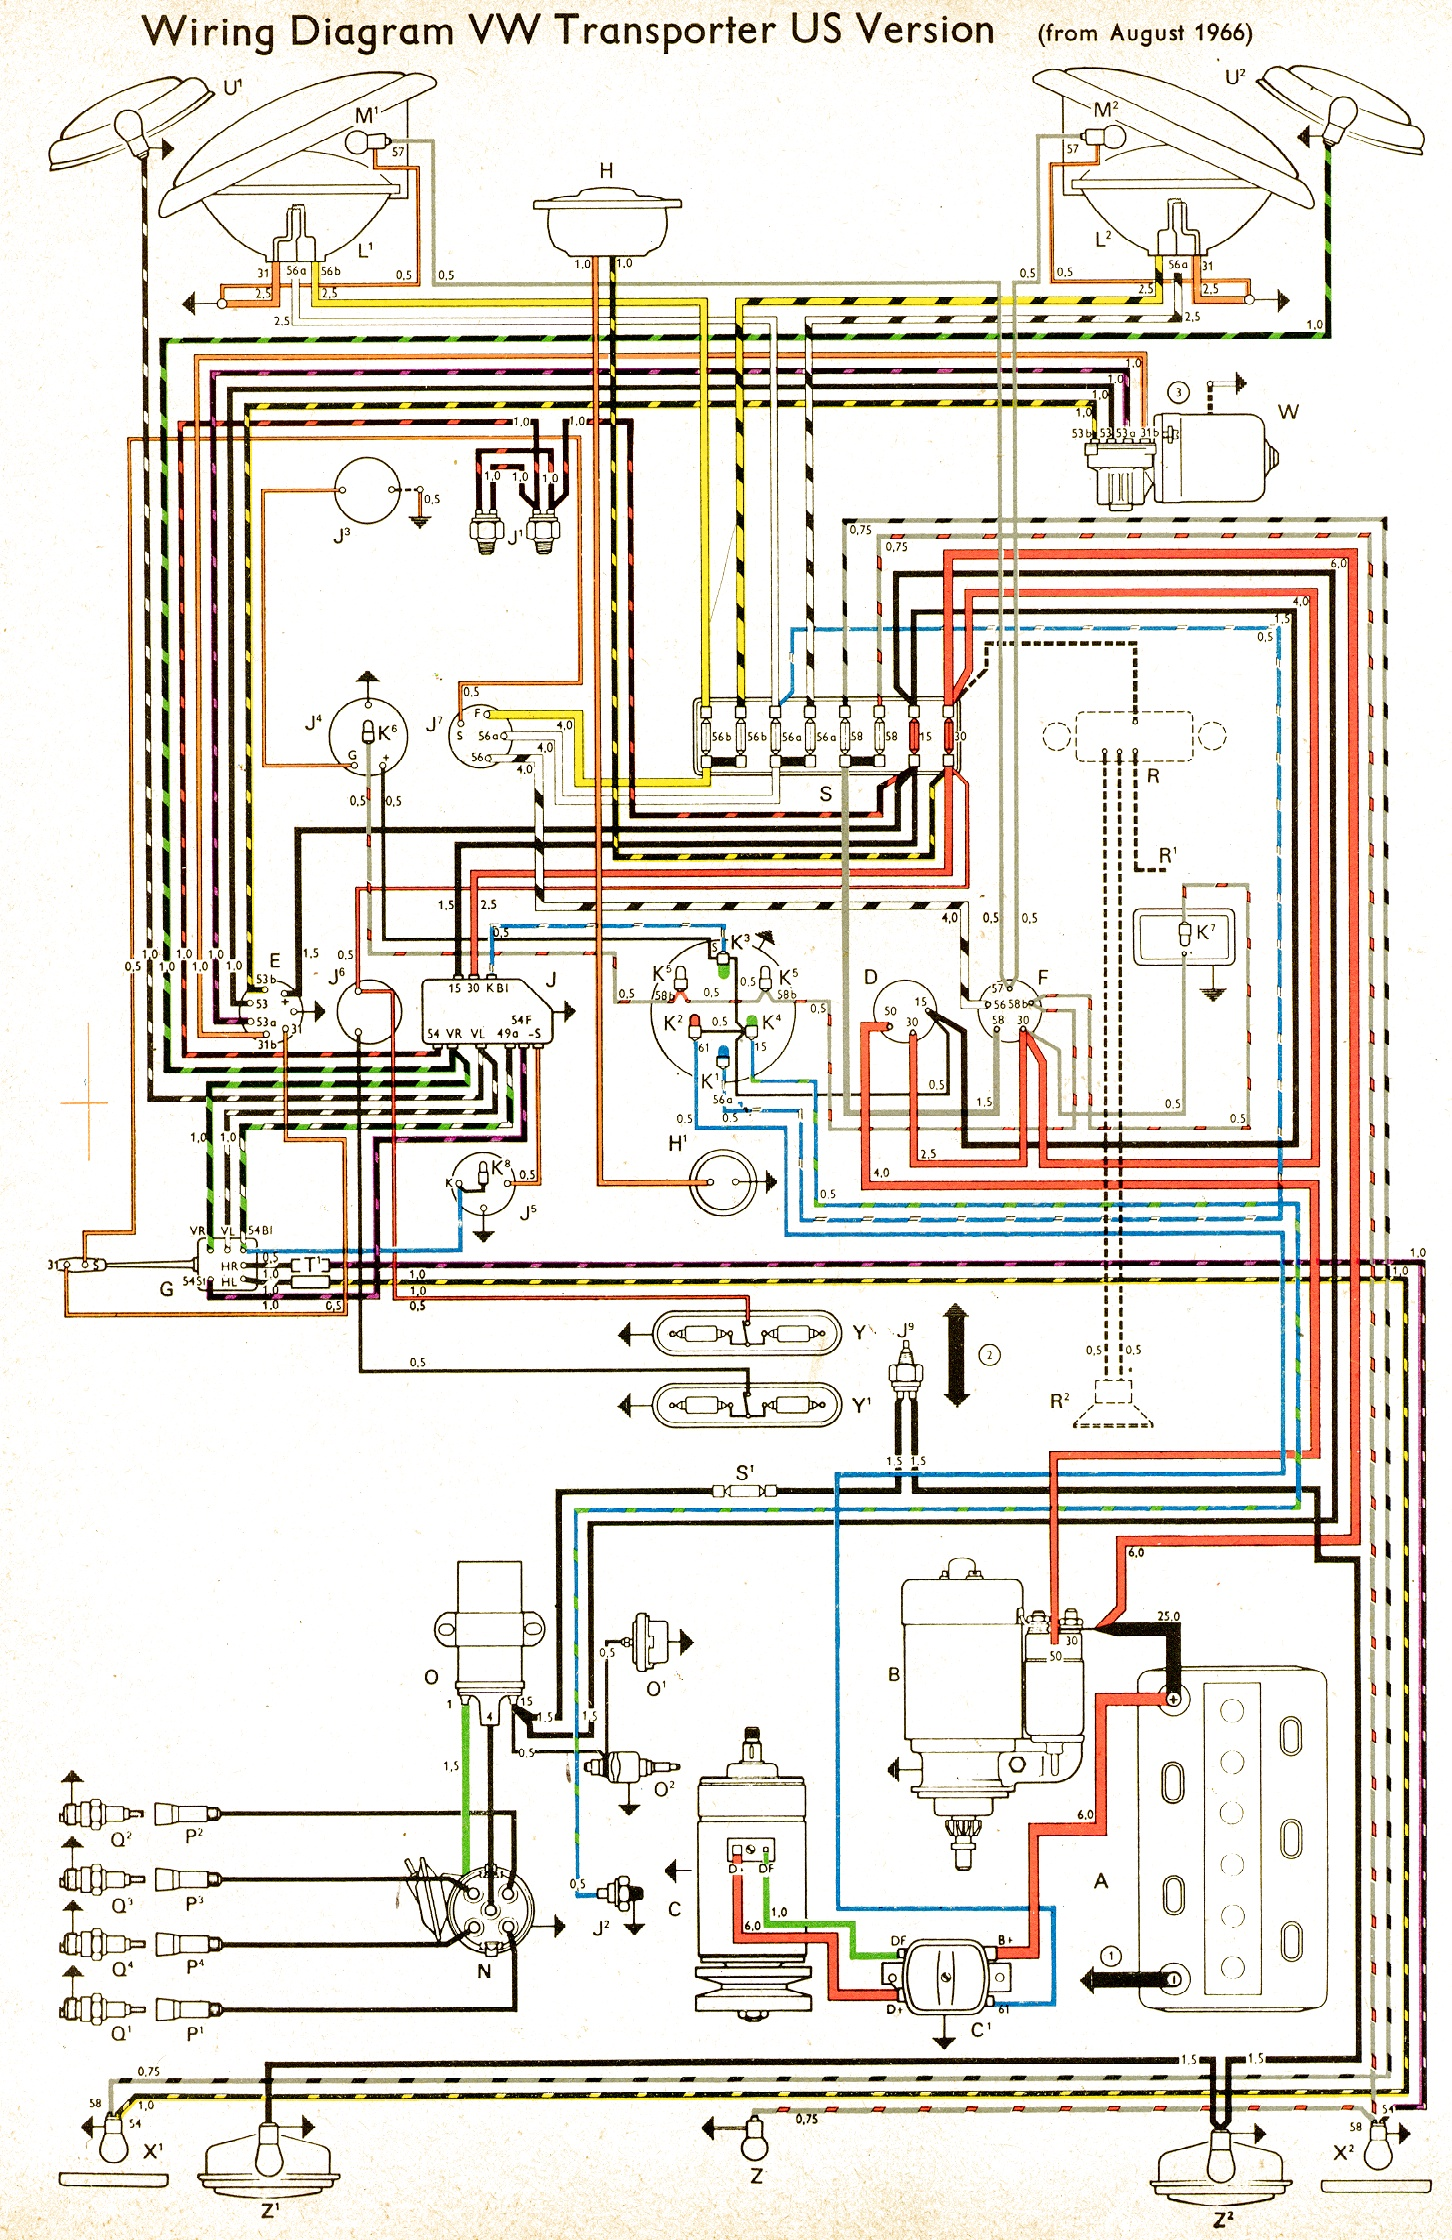 bus 66 usa wiring diagrams \u2022 j squared co Basic Electrical Wiring Diagrams at readyjetset.co